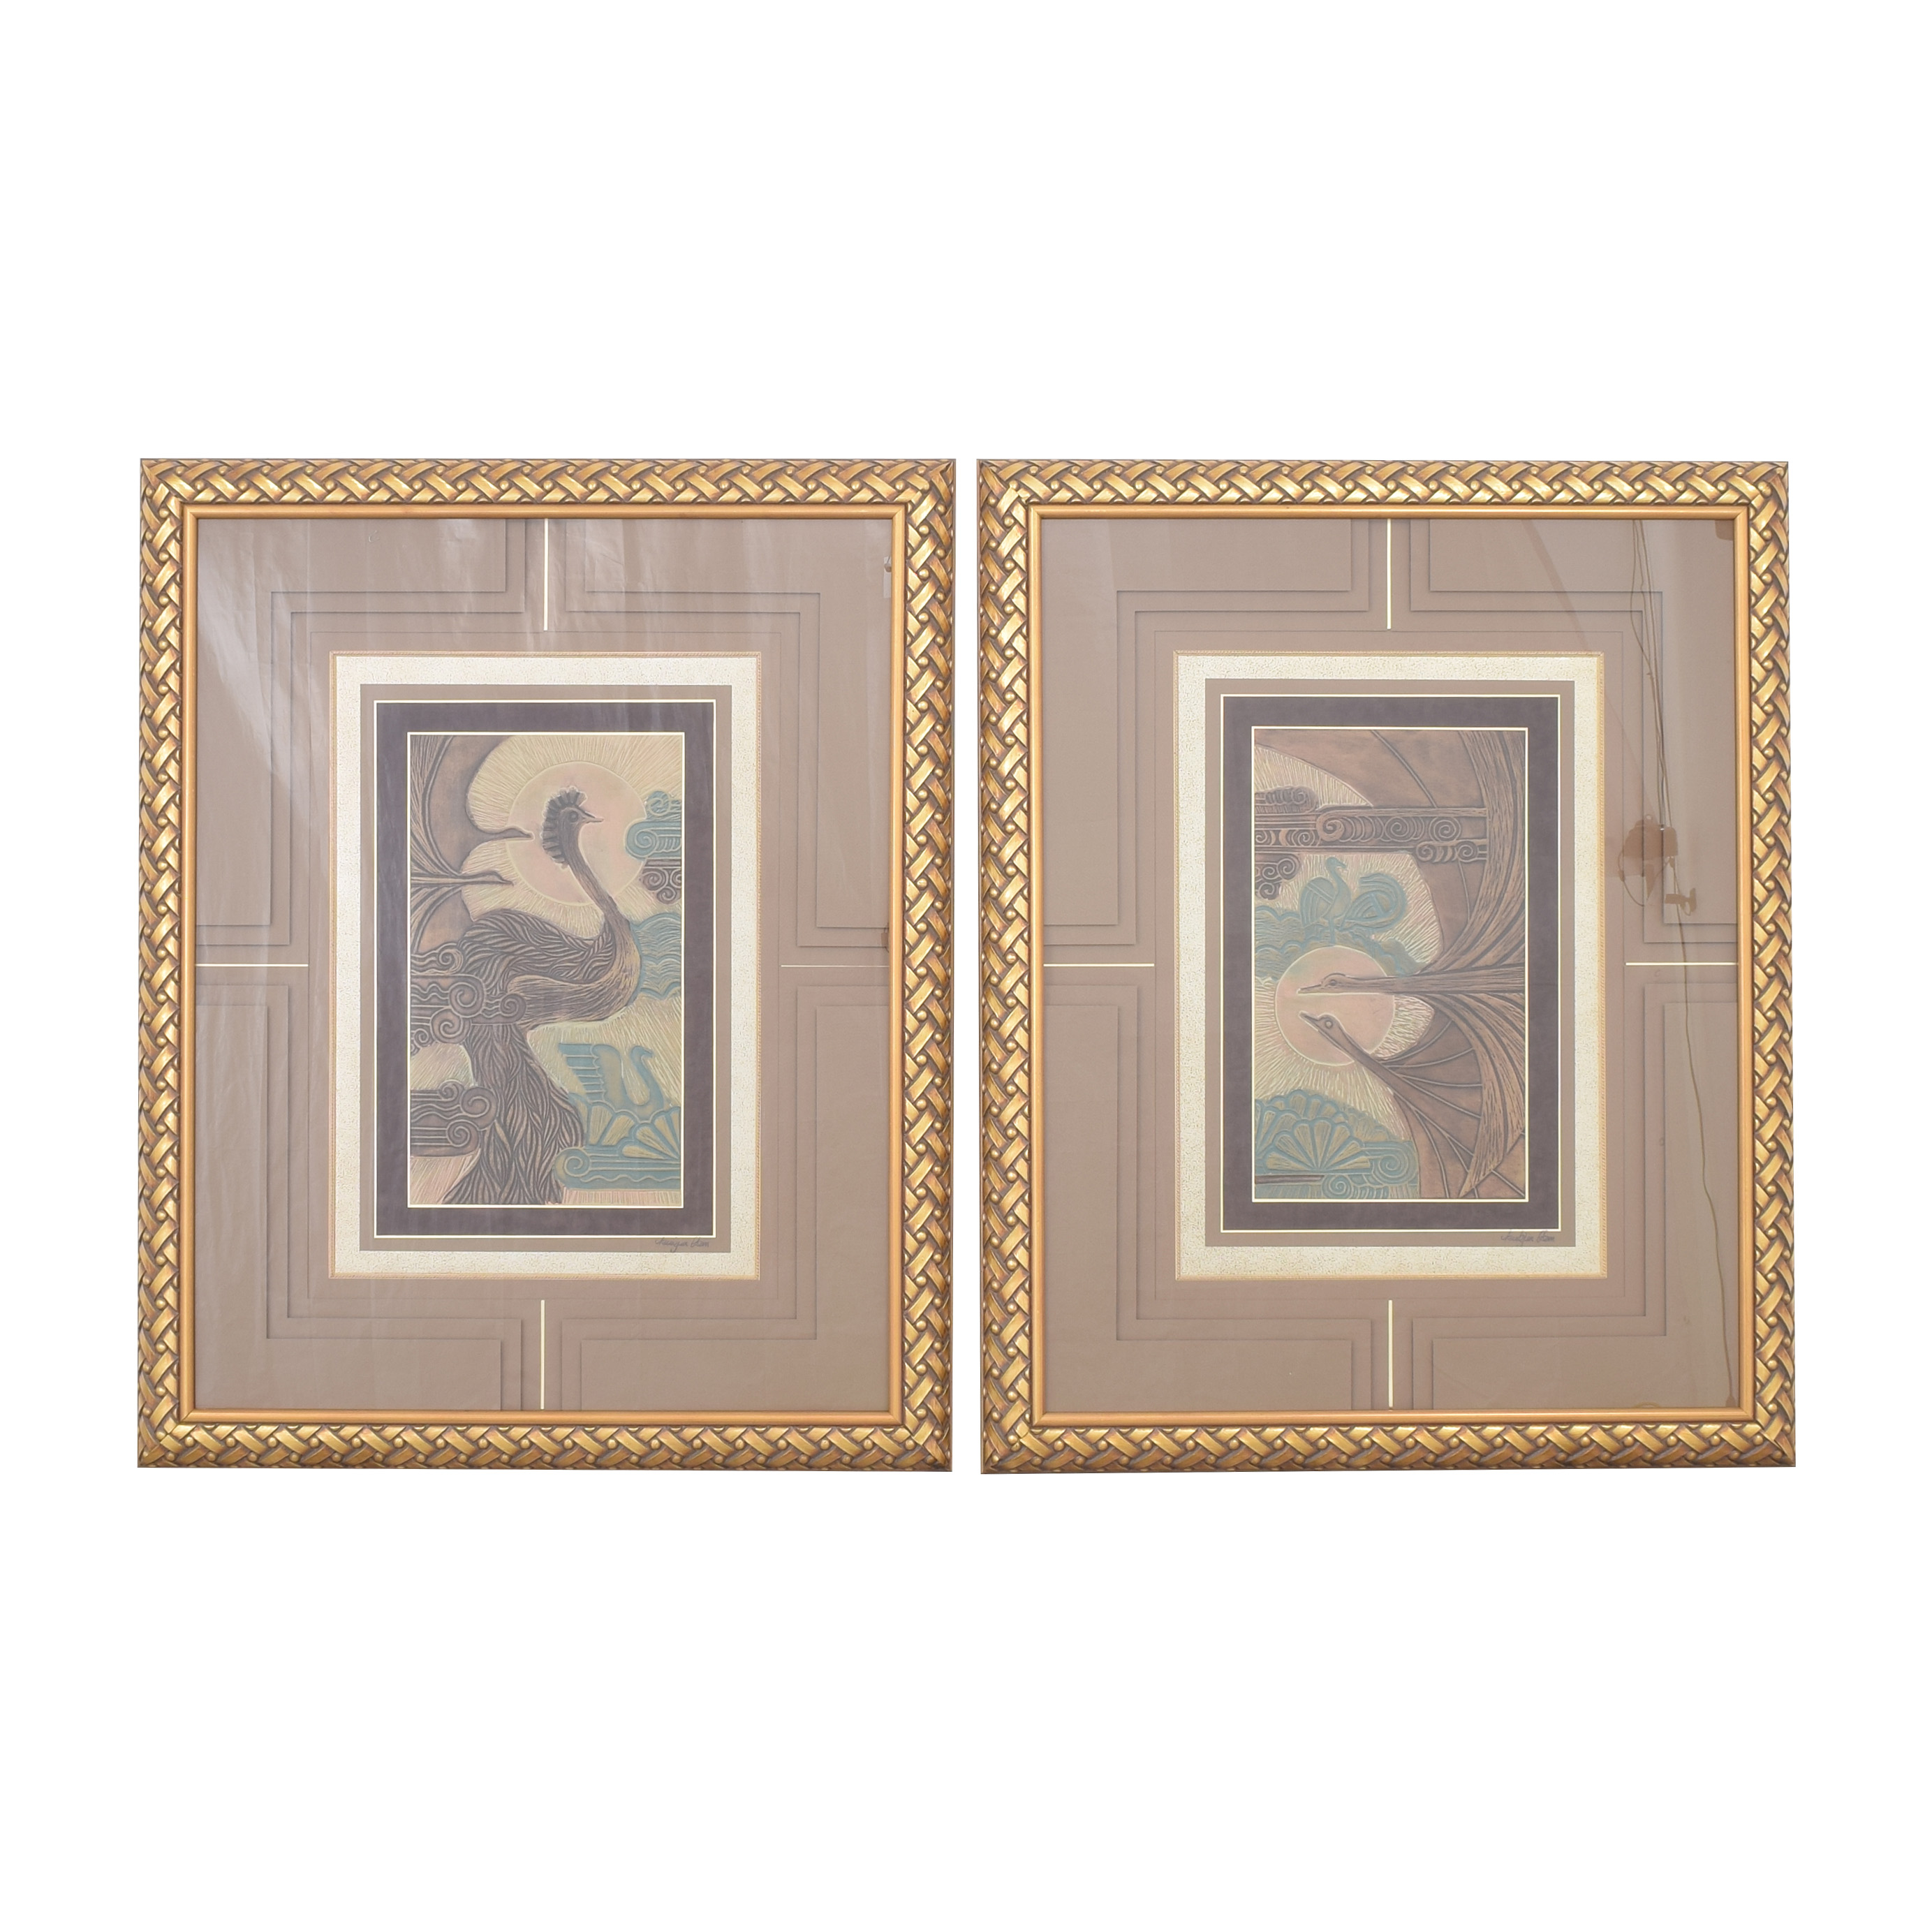 Framed Wall Art multicolored